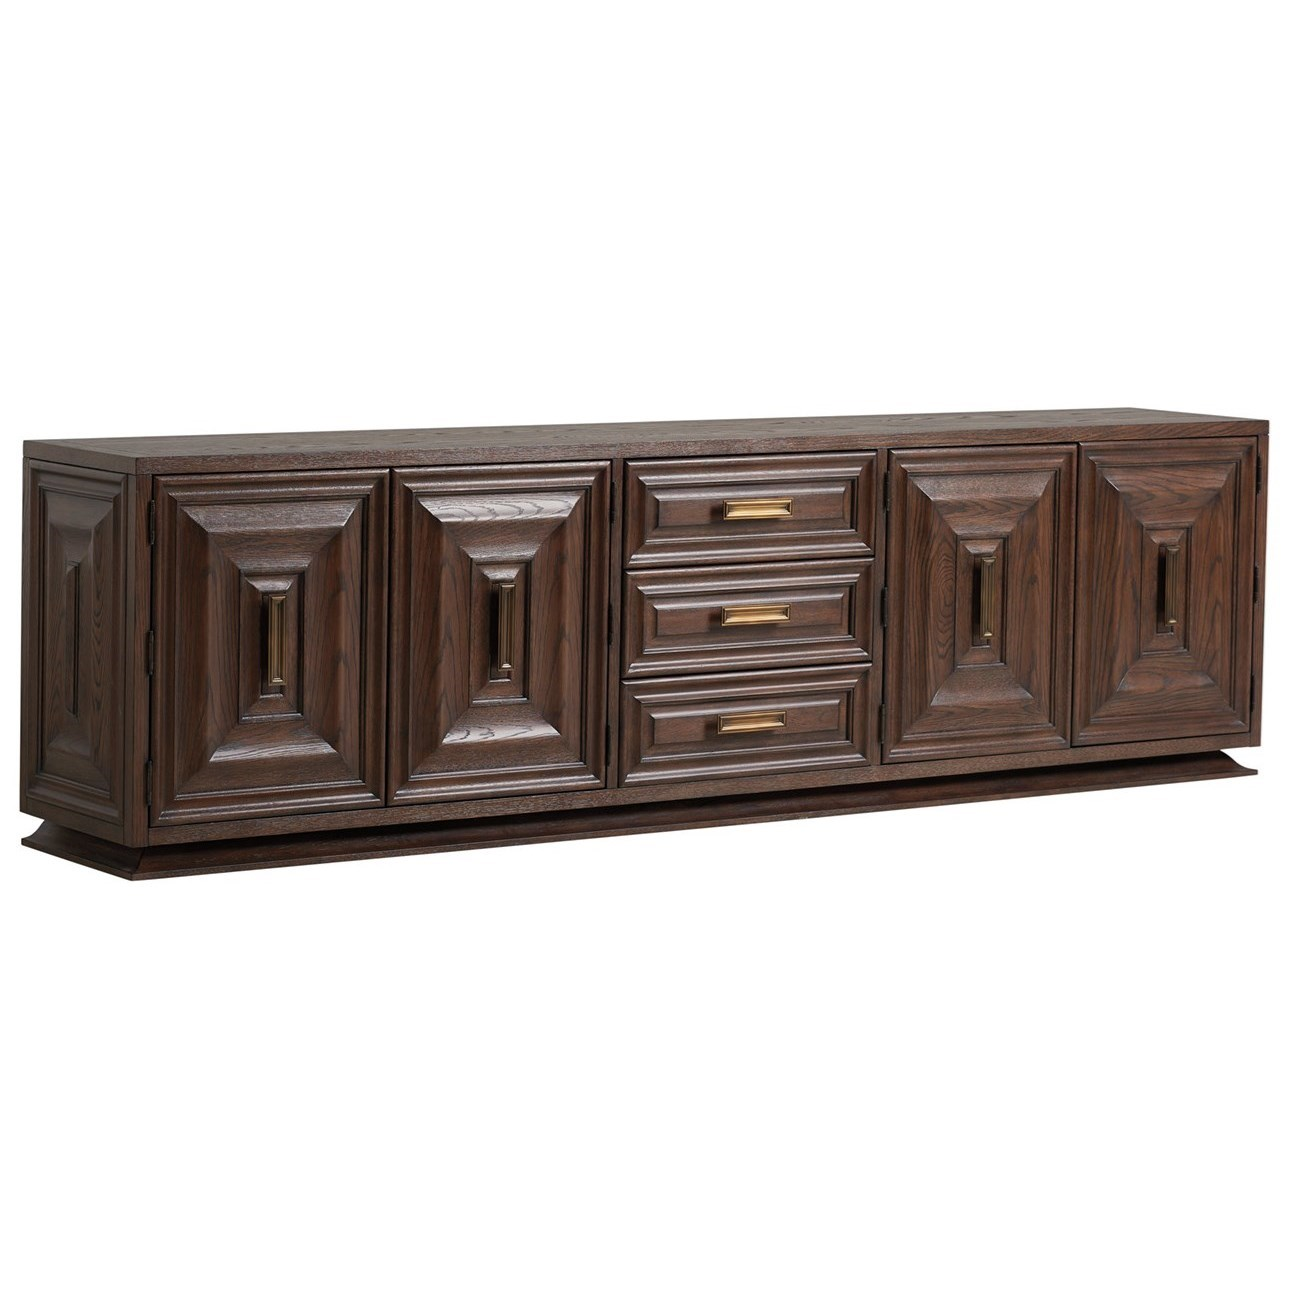 Barrymore Rollins Long Media Console by Sligh at Baer's Furniture